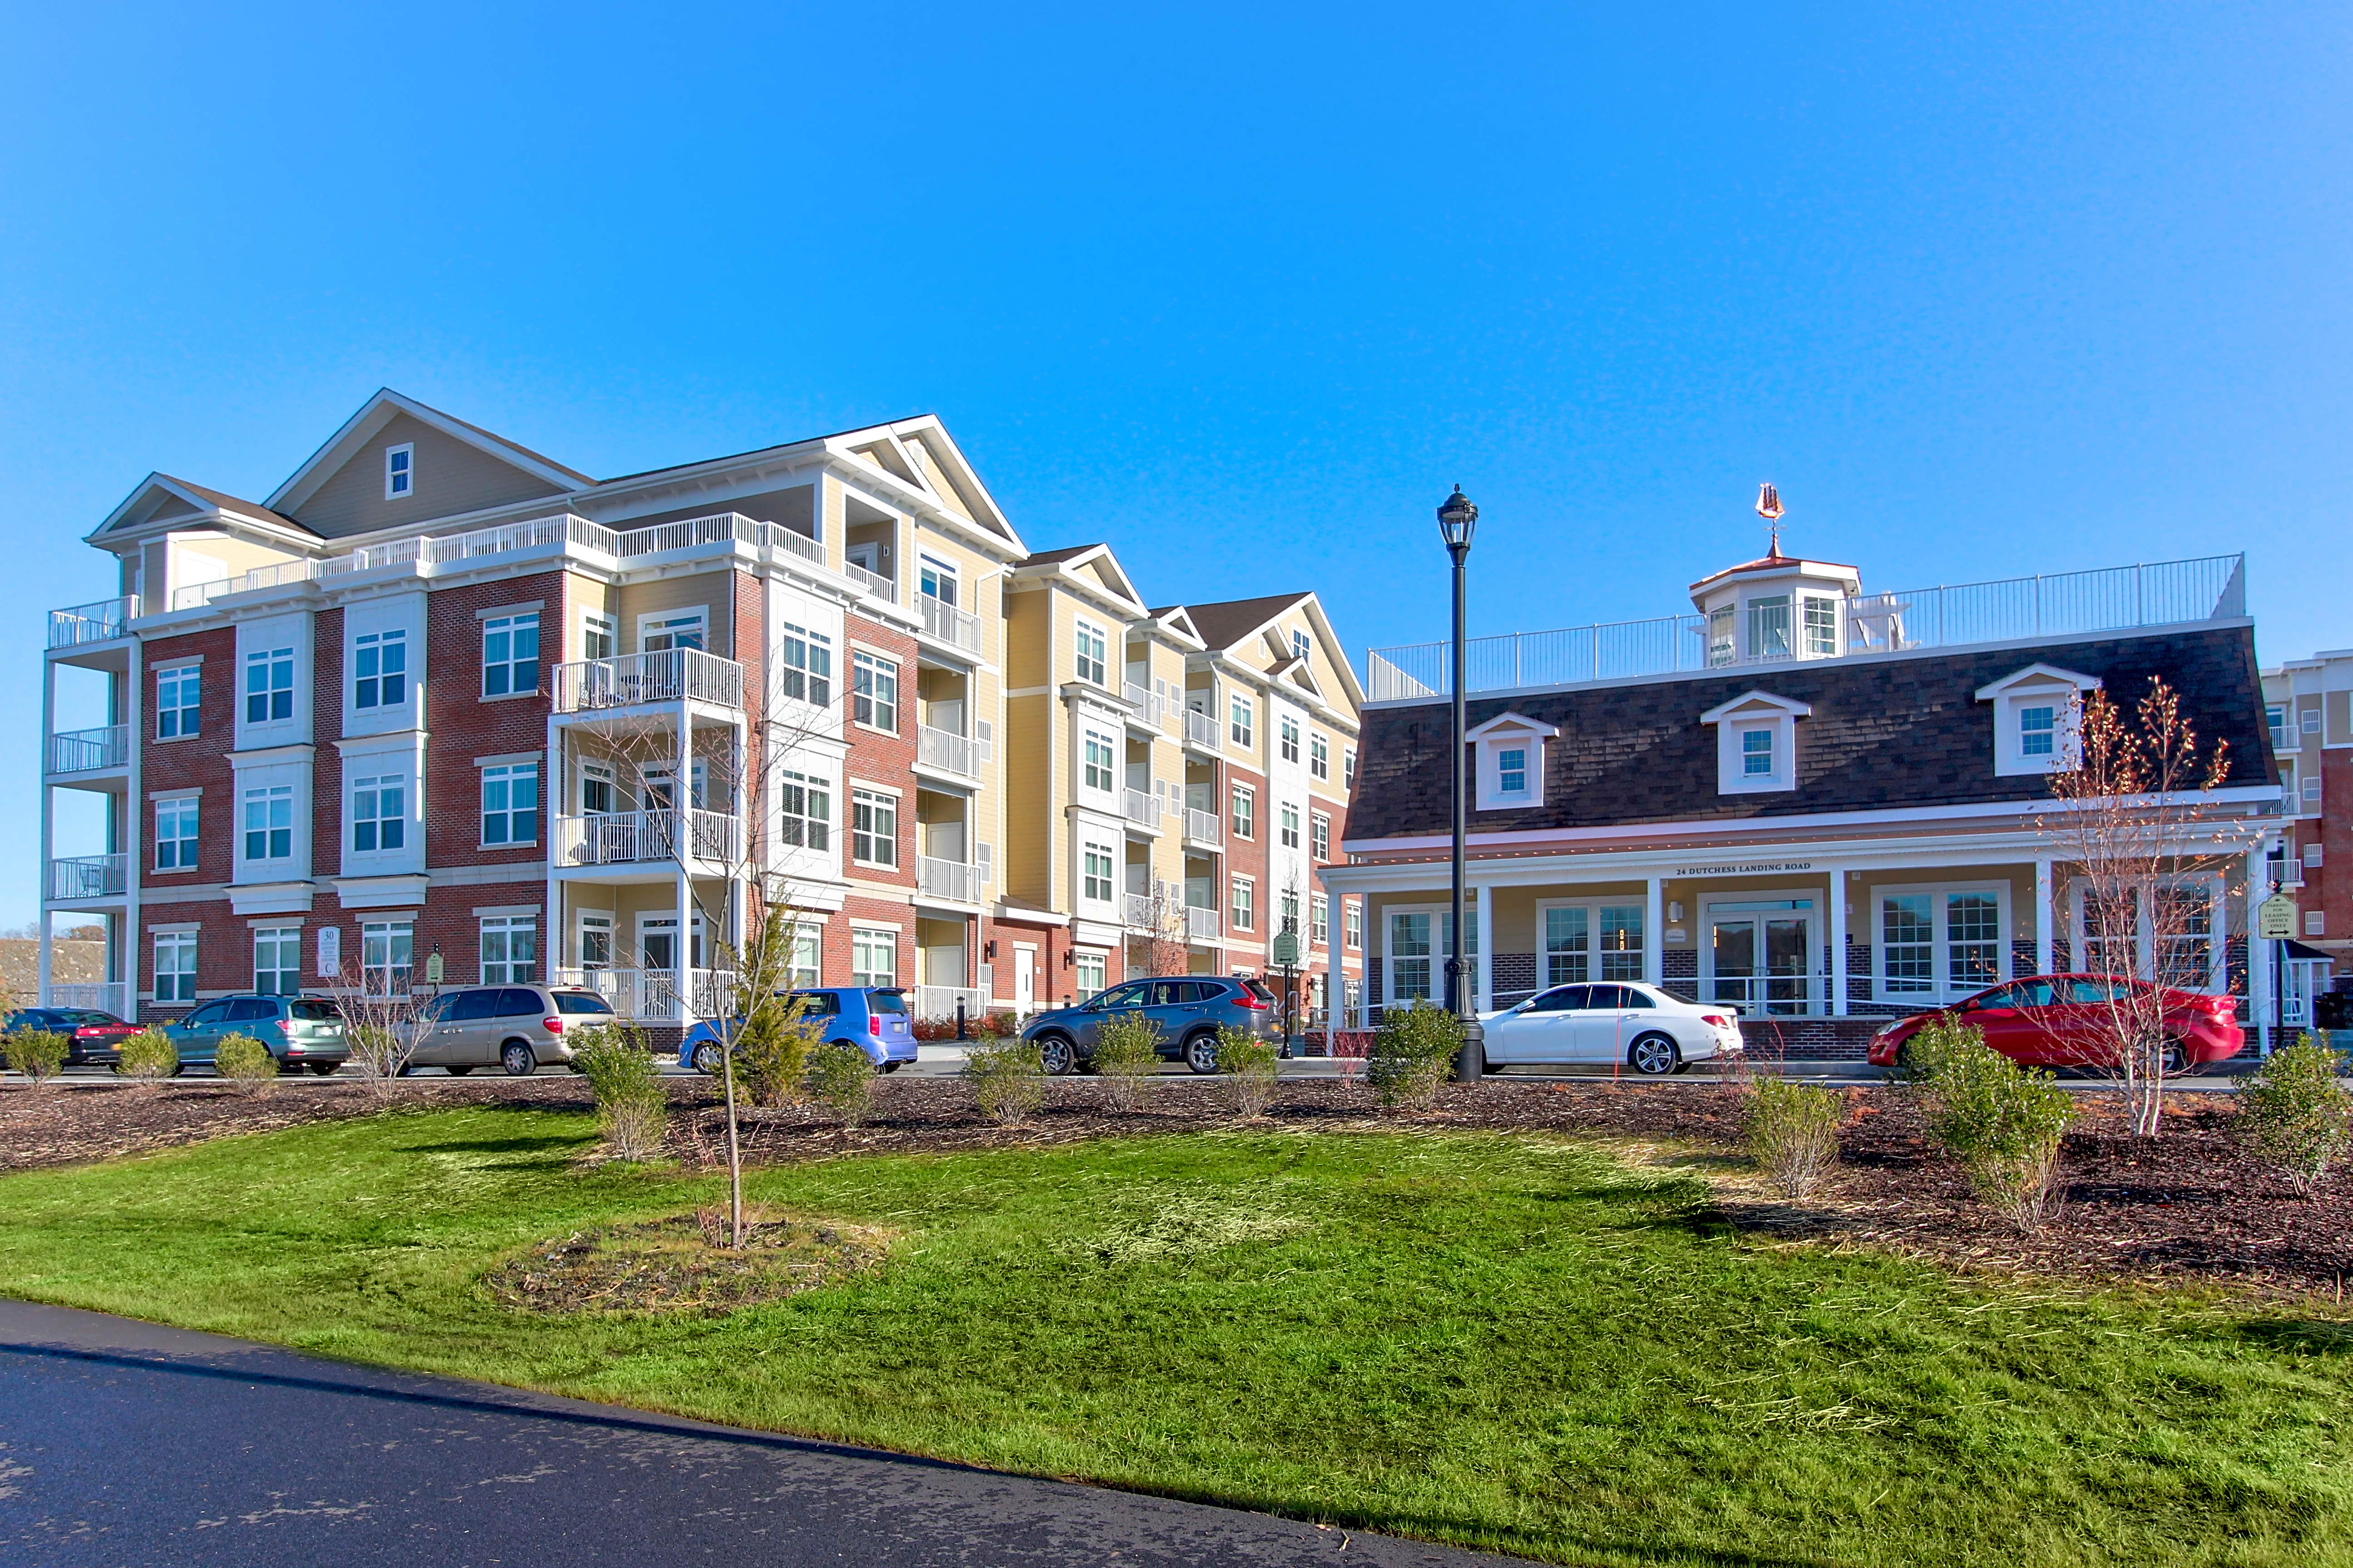 Apartments Near Vassar One Dutchess Avenue for Vassar College Students in Poughkeepsie, NY